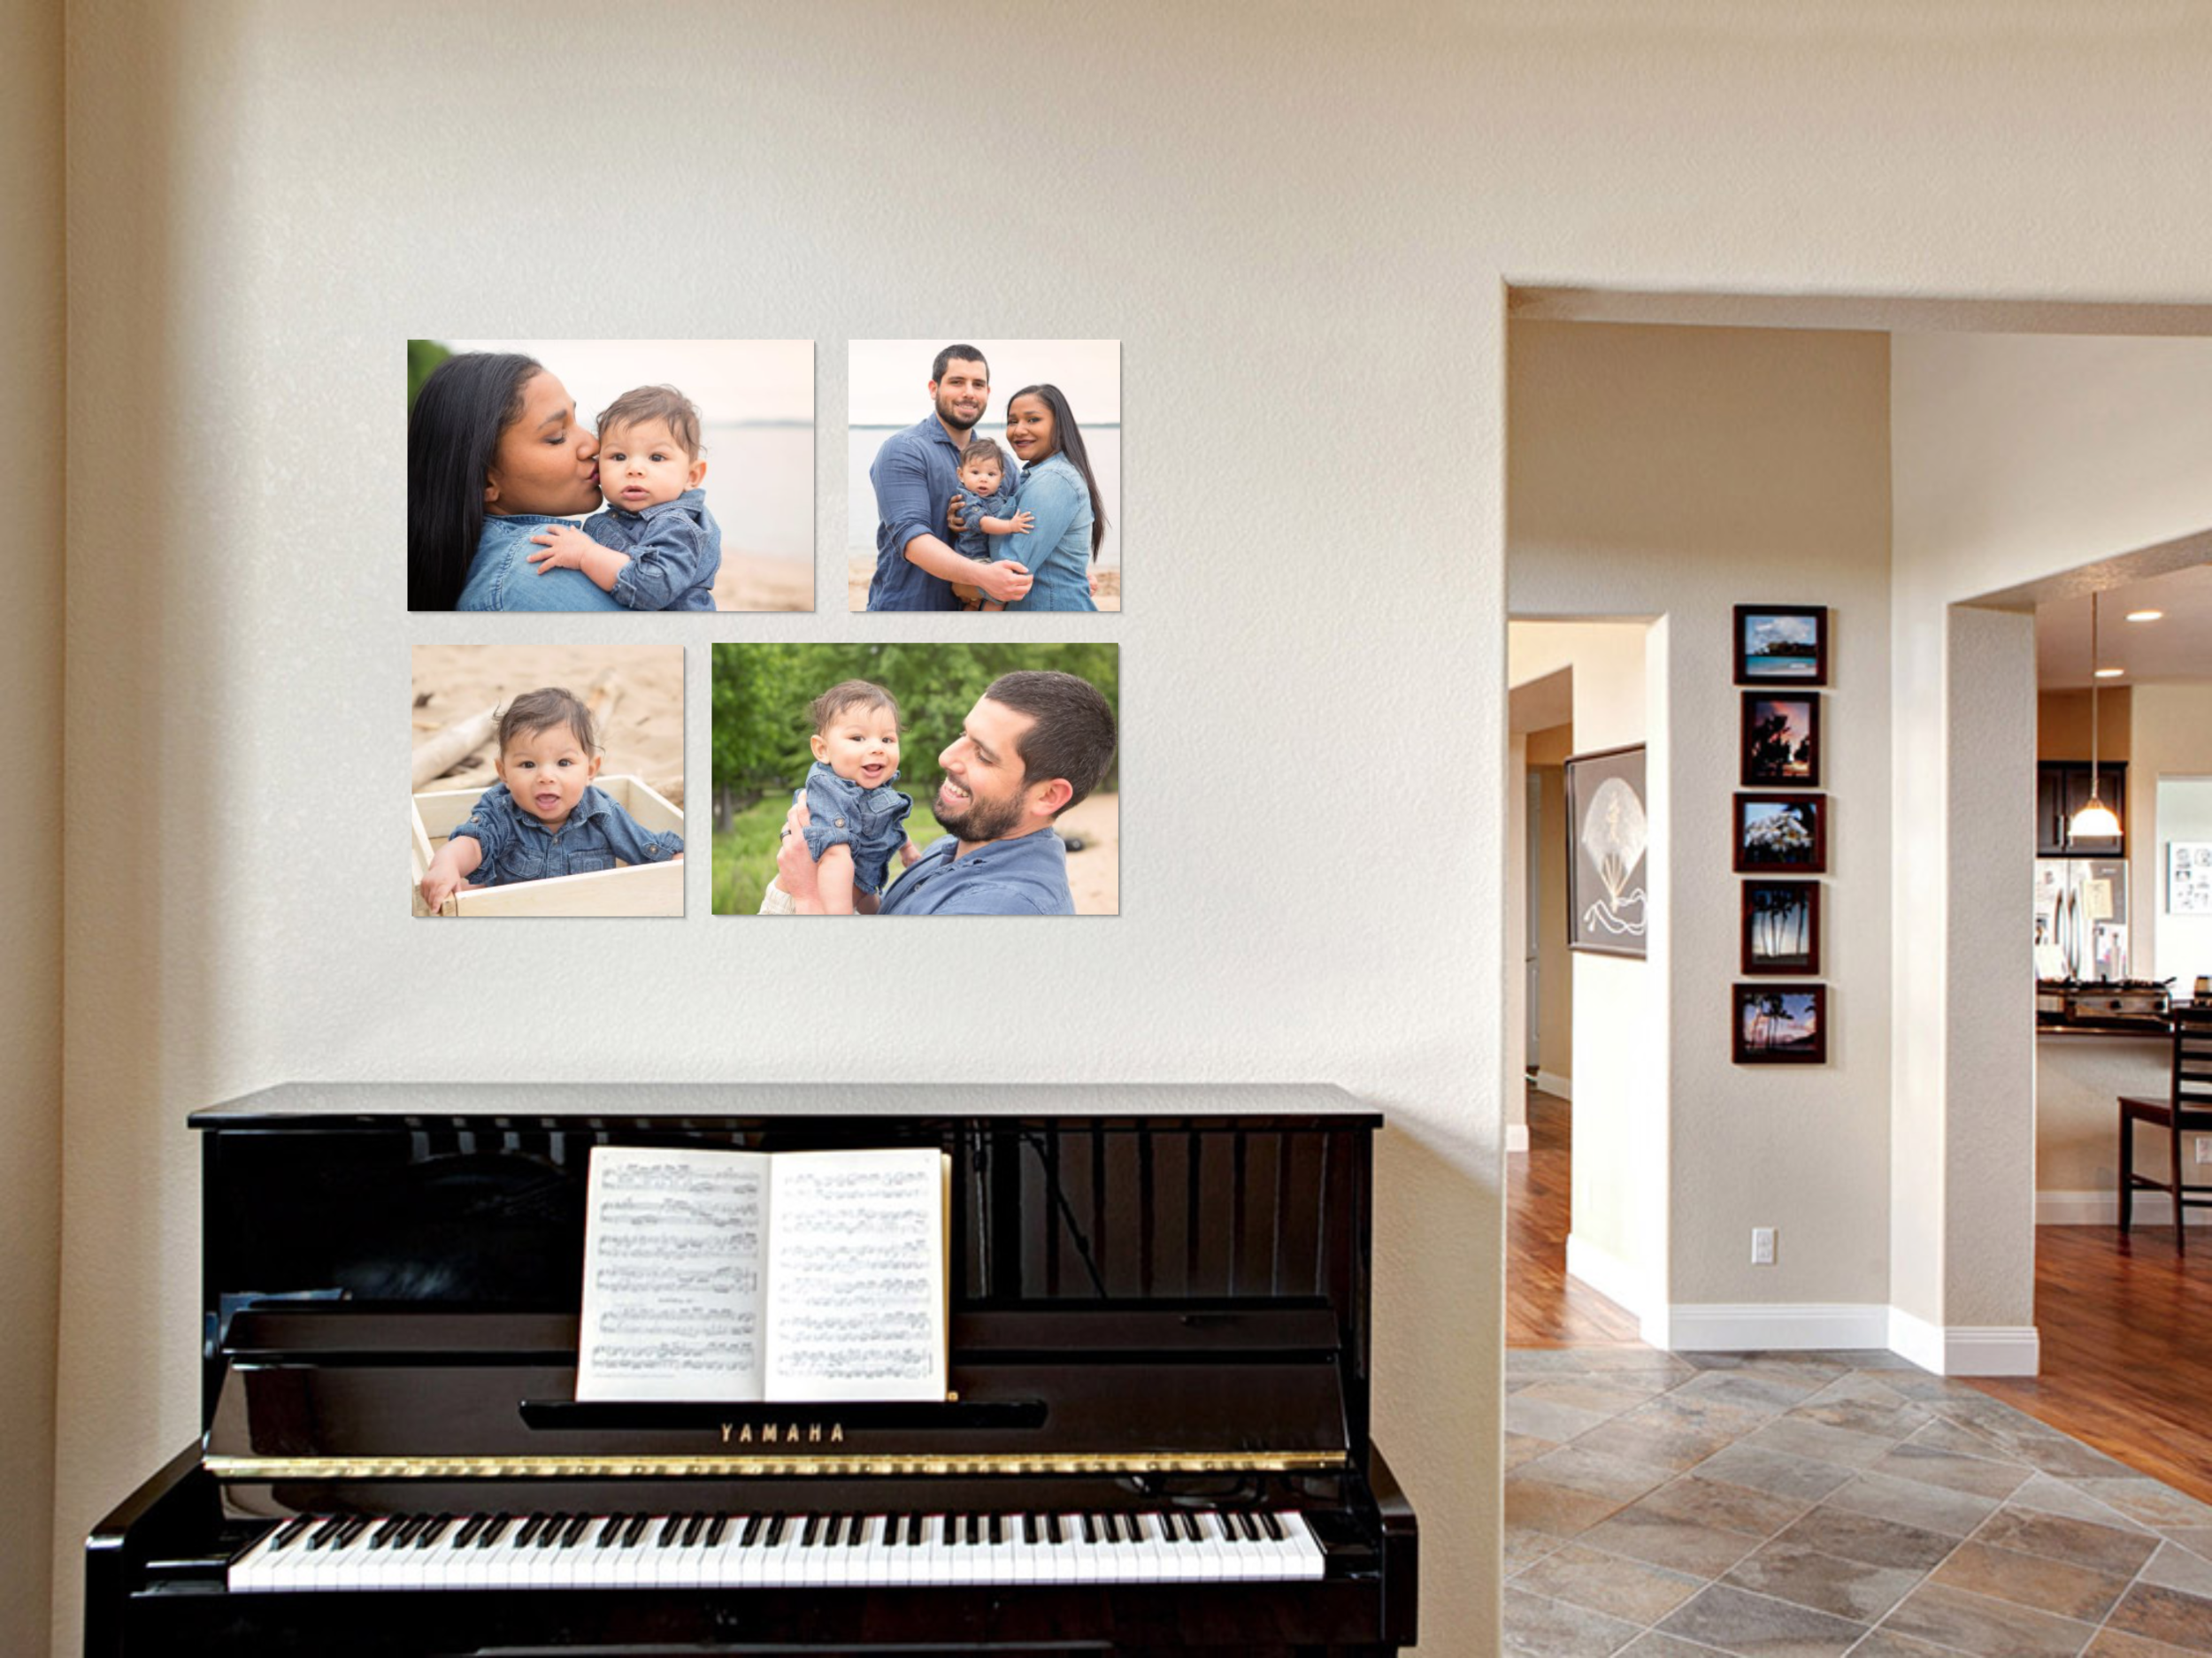 Family wall gallery in living room above piano